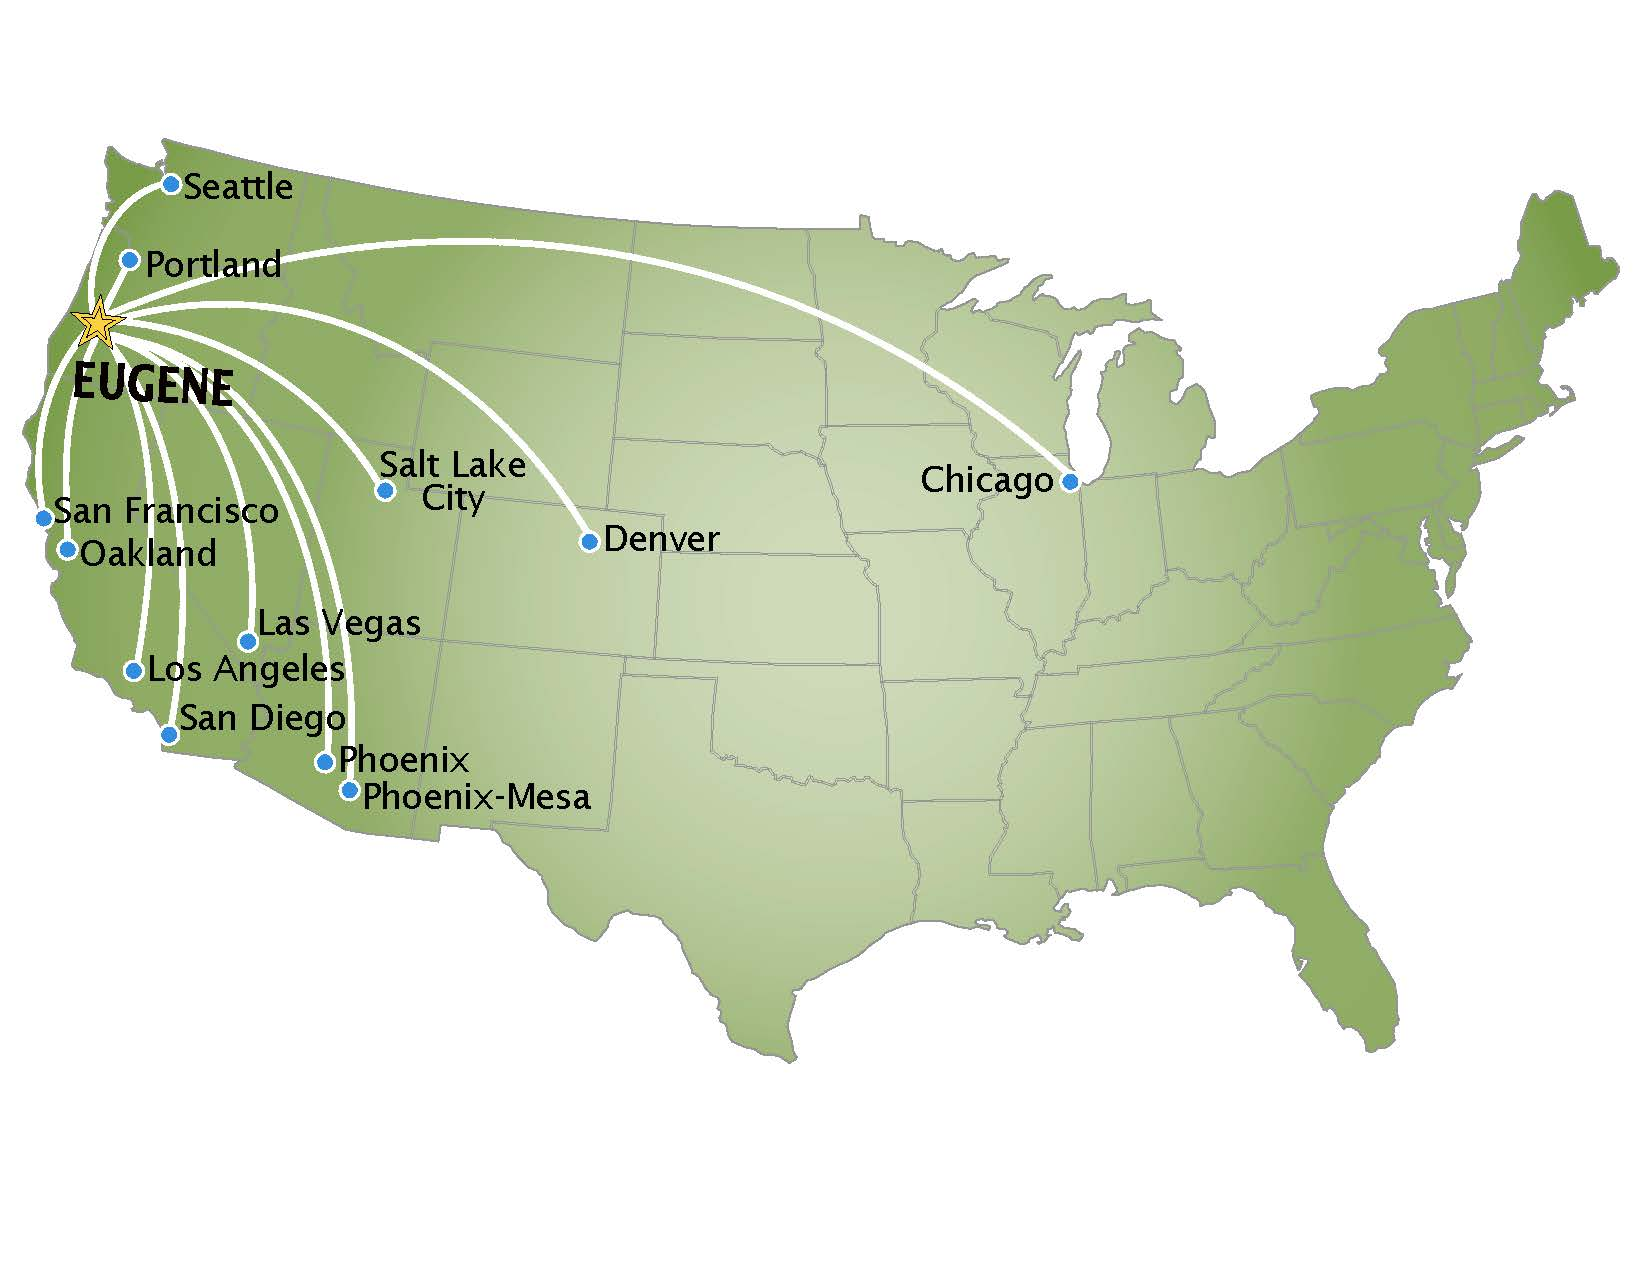 2019 map of nonstop flights from Eugene